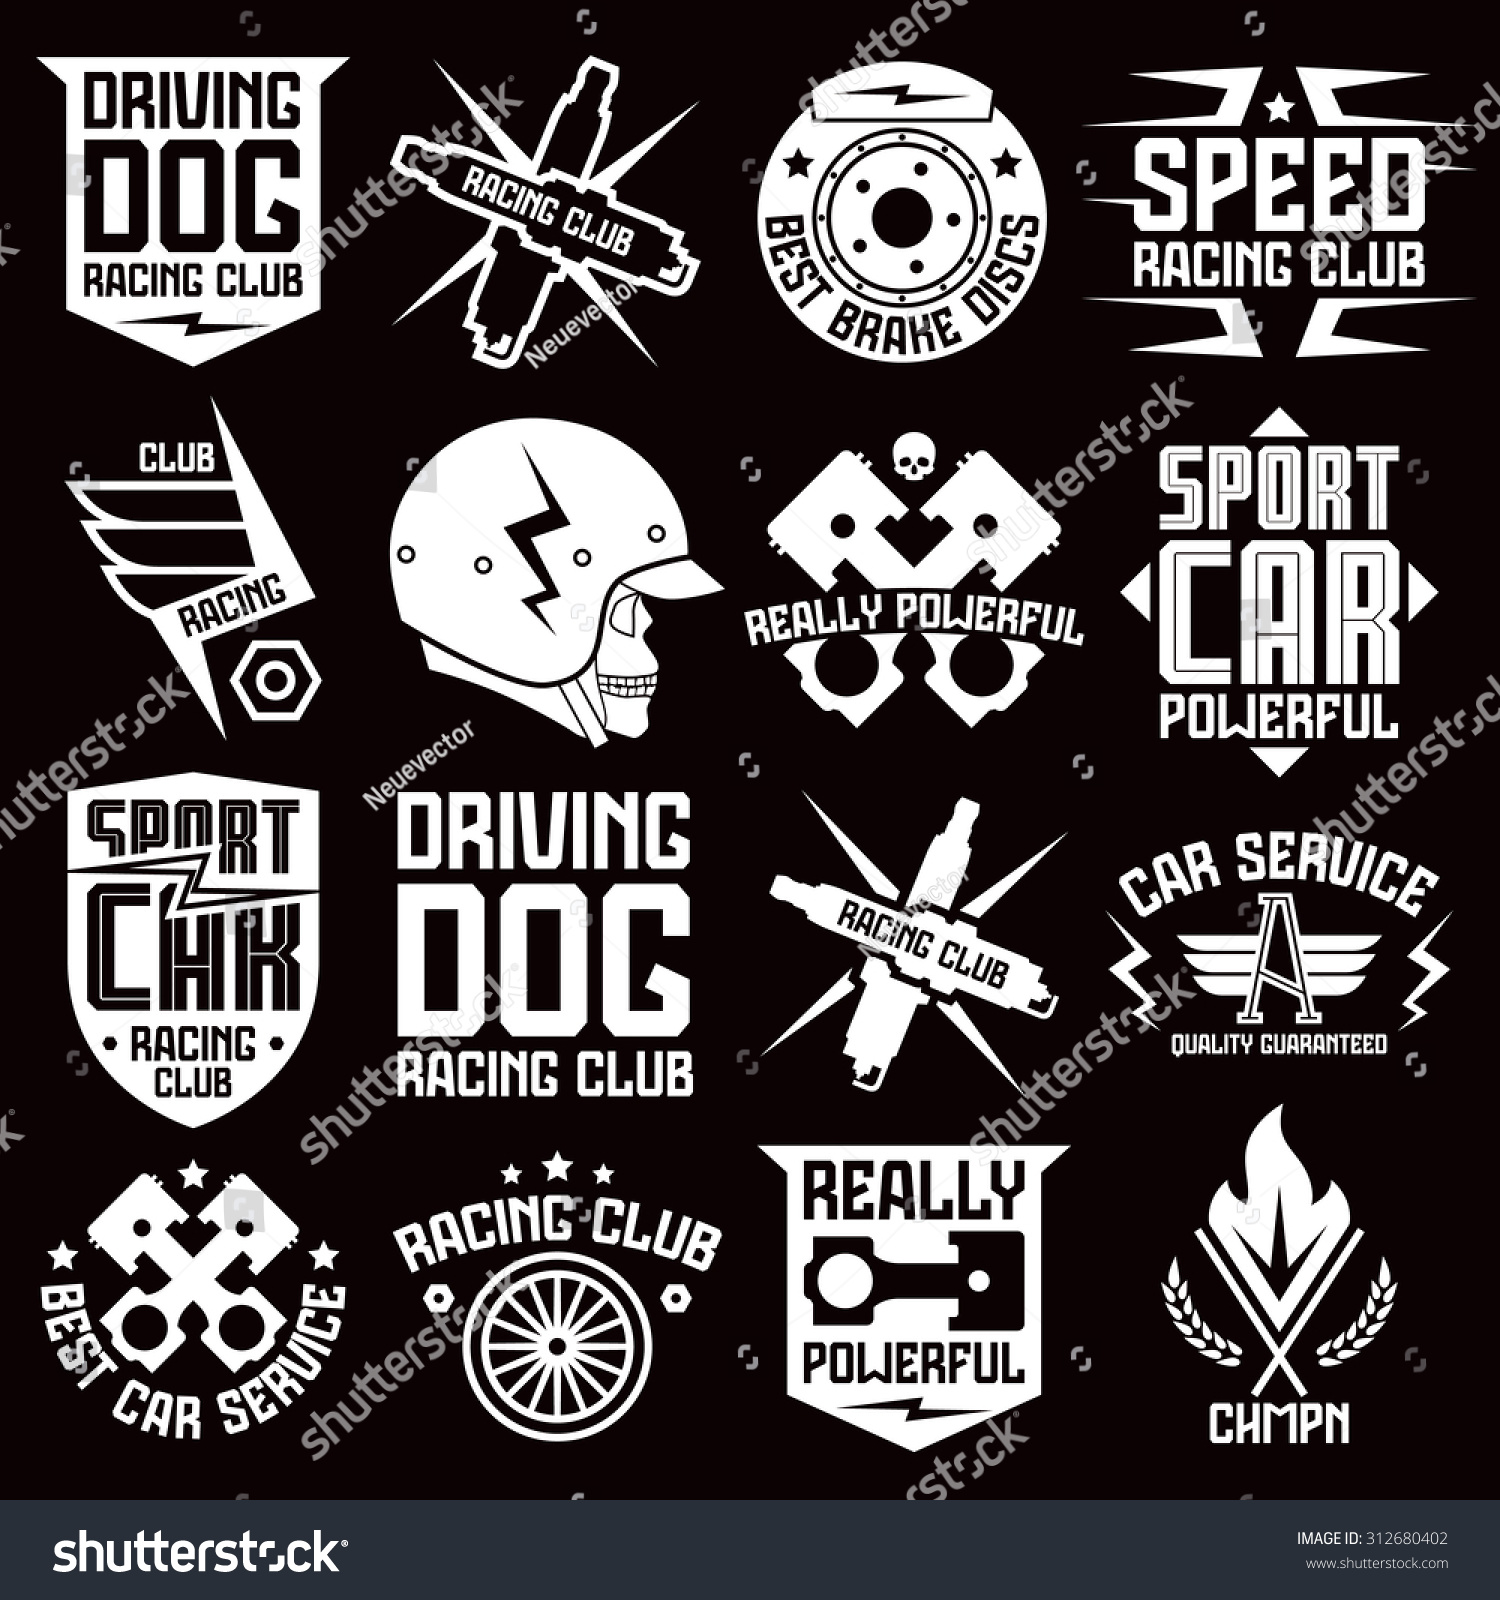 Vinyl stickers and badges on car graphic design for t shirt and stickers